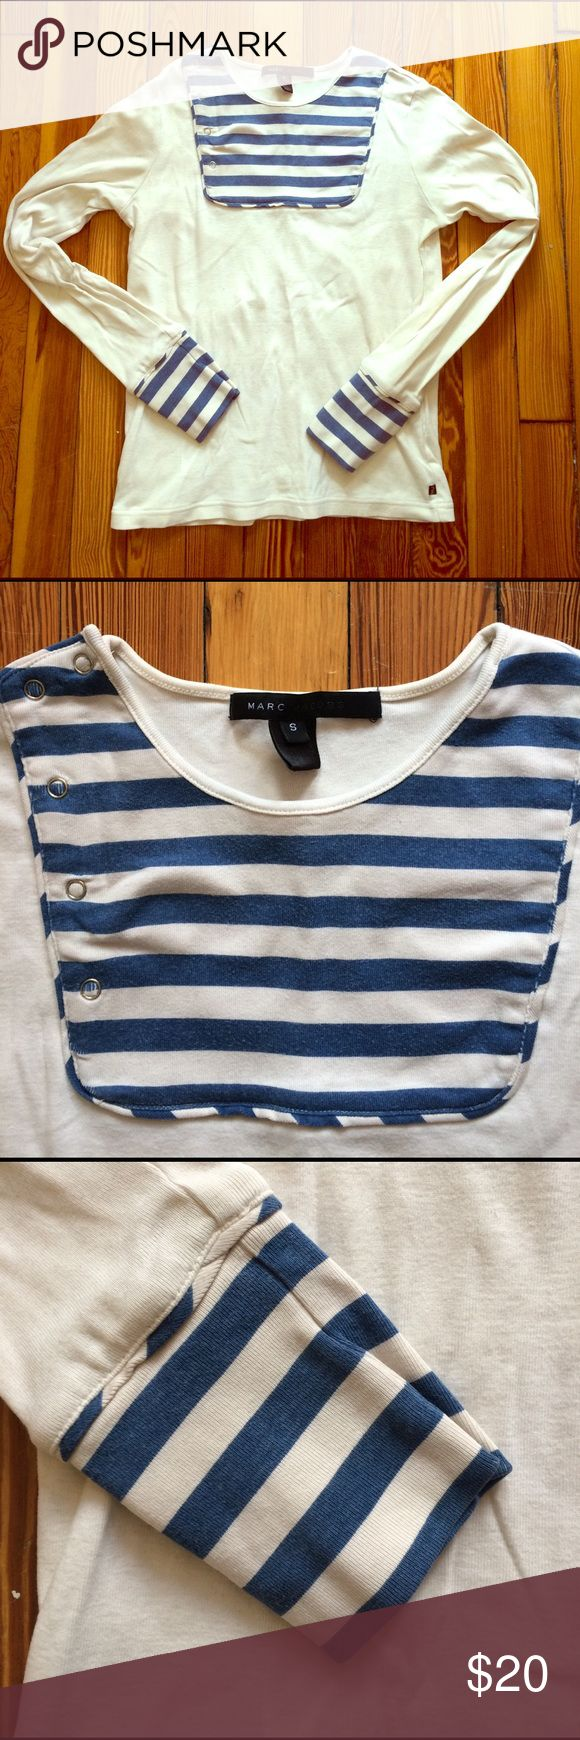 Marc Jacobs blue and cream L/S nautical tee, sz S Lovely nautical-style long-sleeved tshirt by Marc Jacobs. Worn, but has tons of life left! Colors are navy and cream. 5 snaps on top (see second photo). Price firm! Marc Jacobs Tops Tees - Long Sleeve